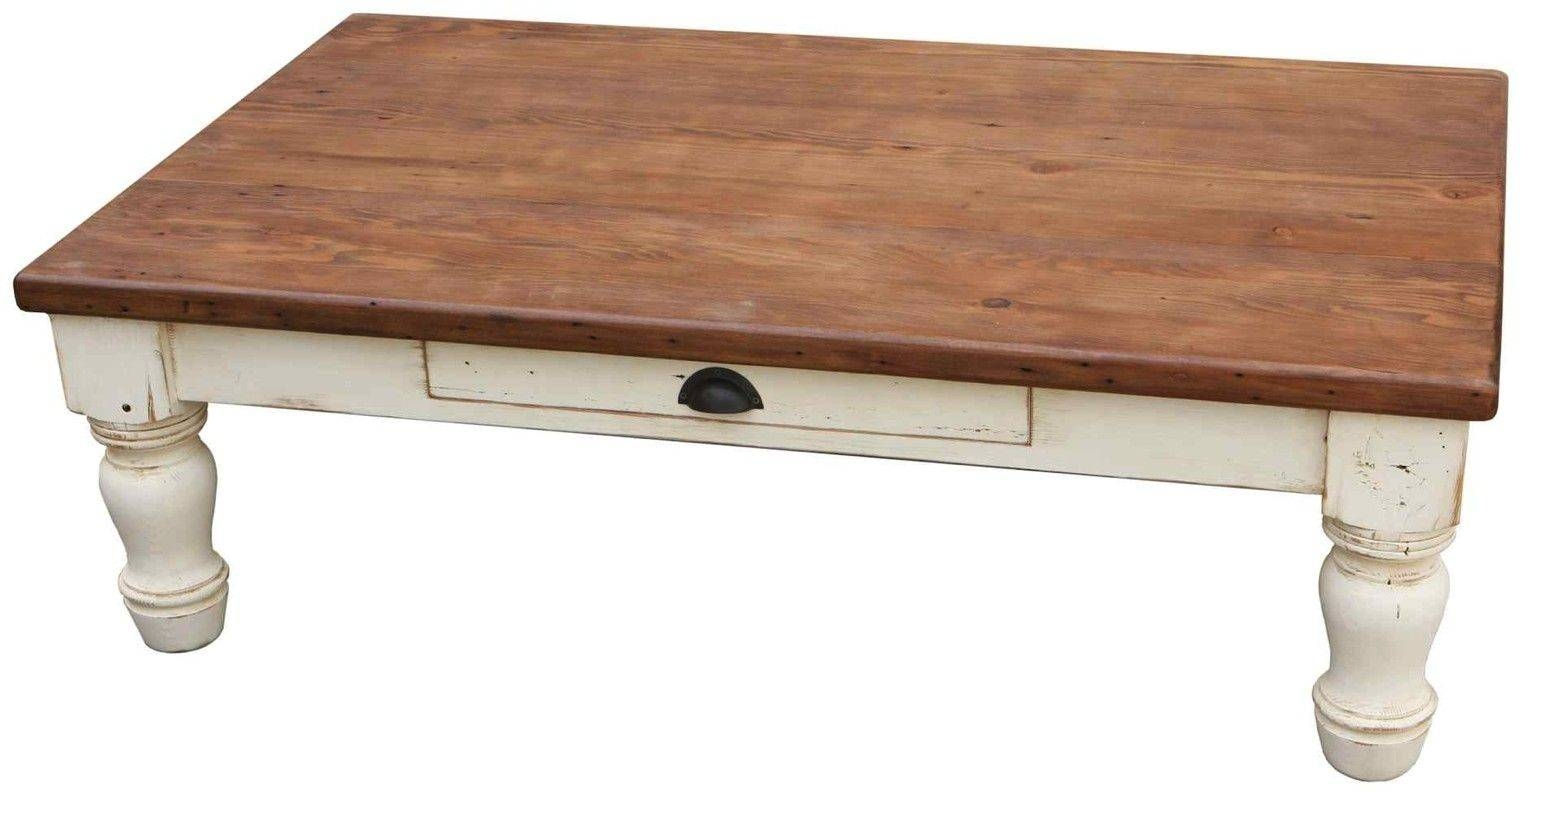 Handmade Country Farm Turned Leg Coffee Tablemortise & Tenon in Country Coffee Tables (Image 27 of 30)